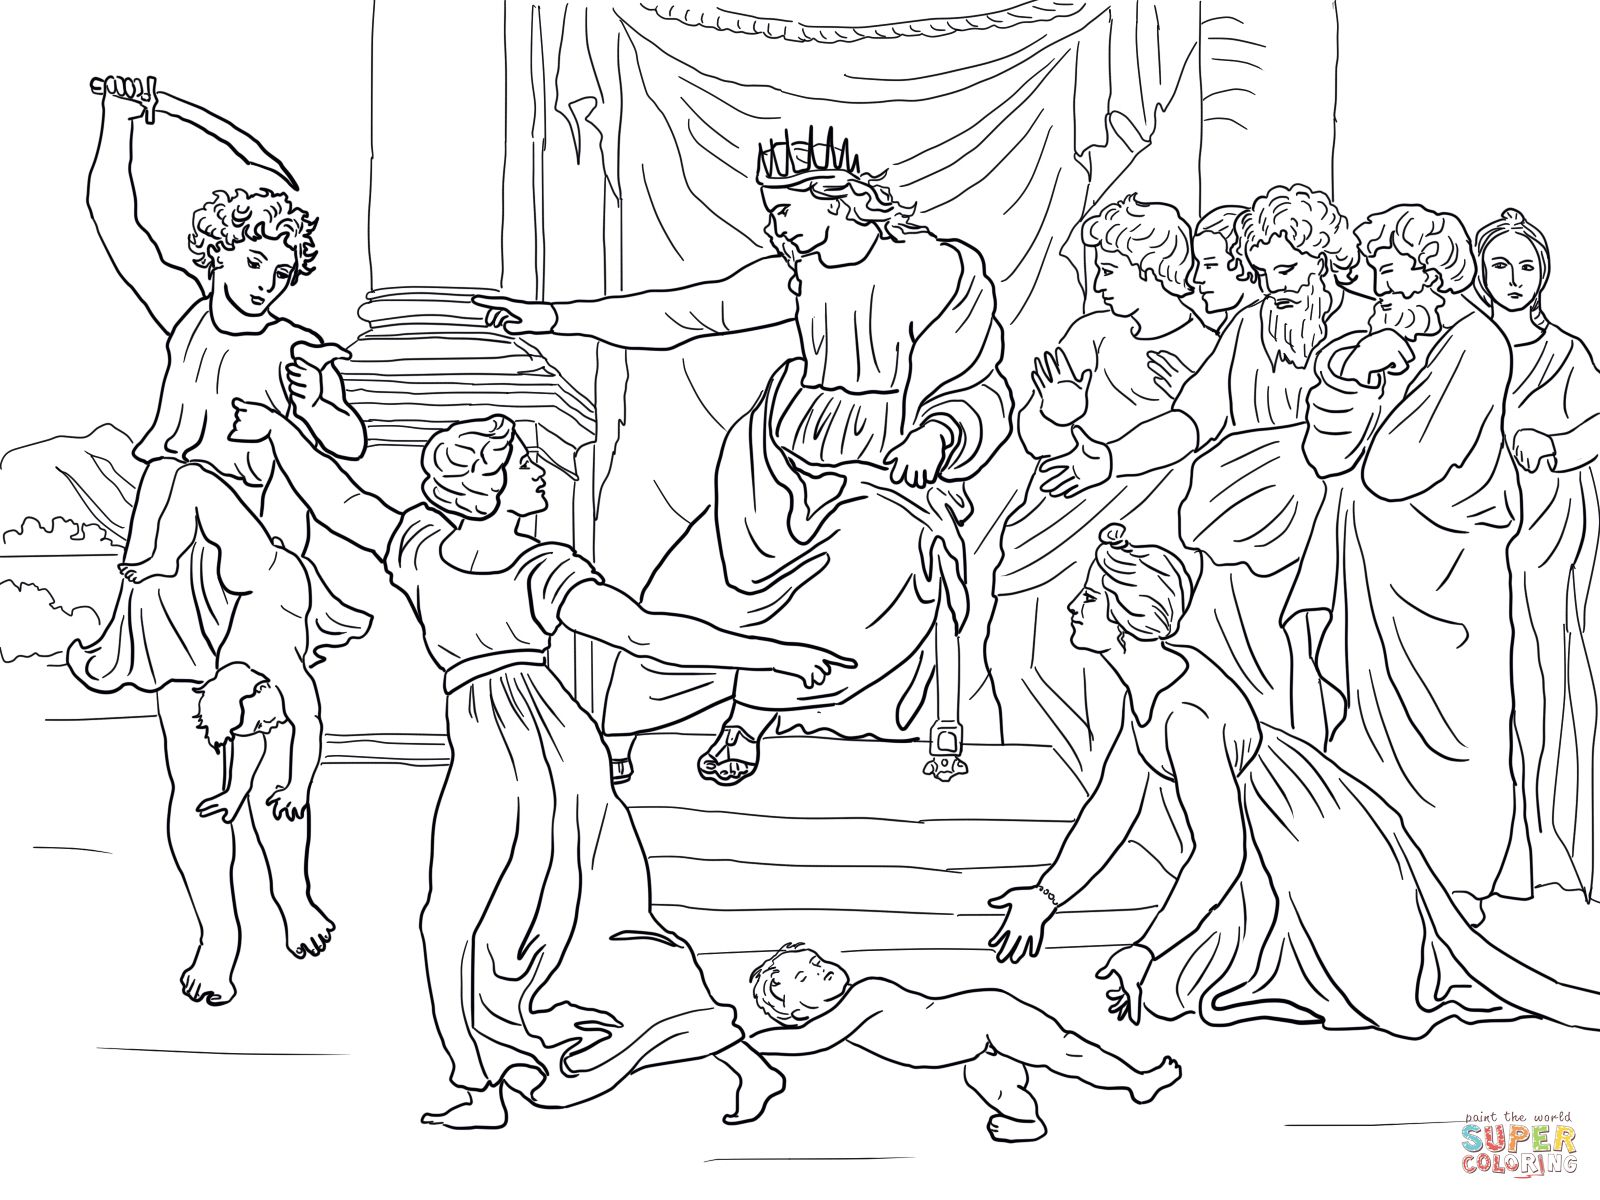 judgment of solomon coloring page supercoloring